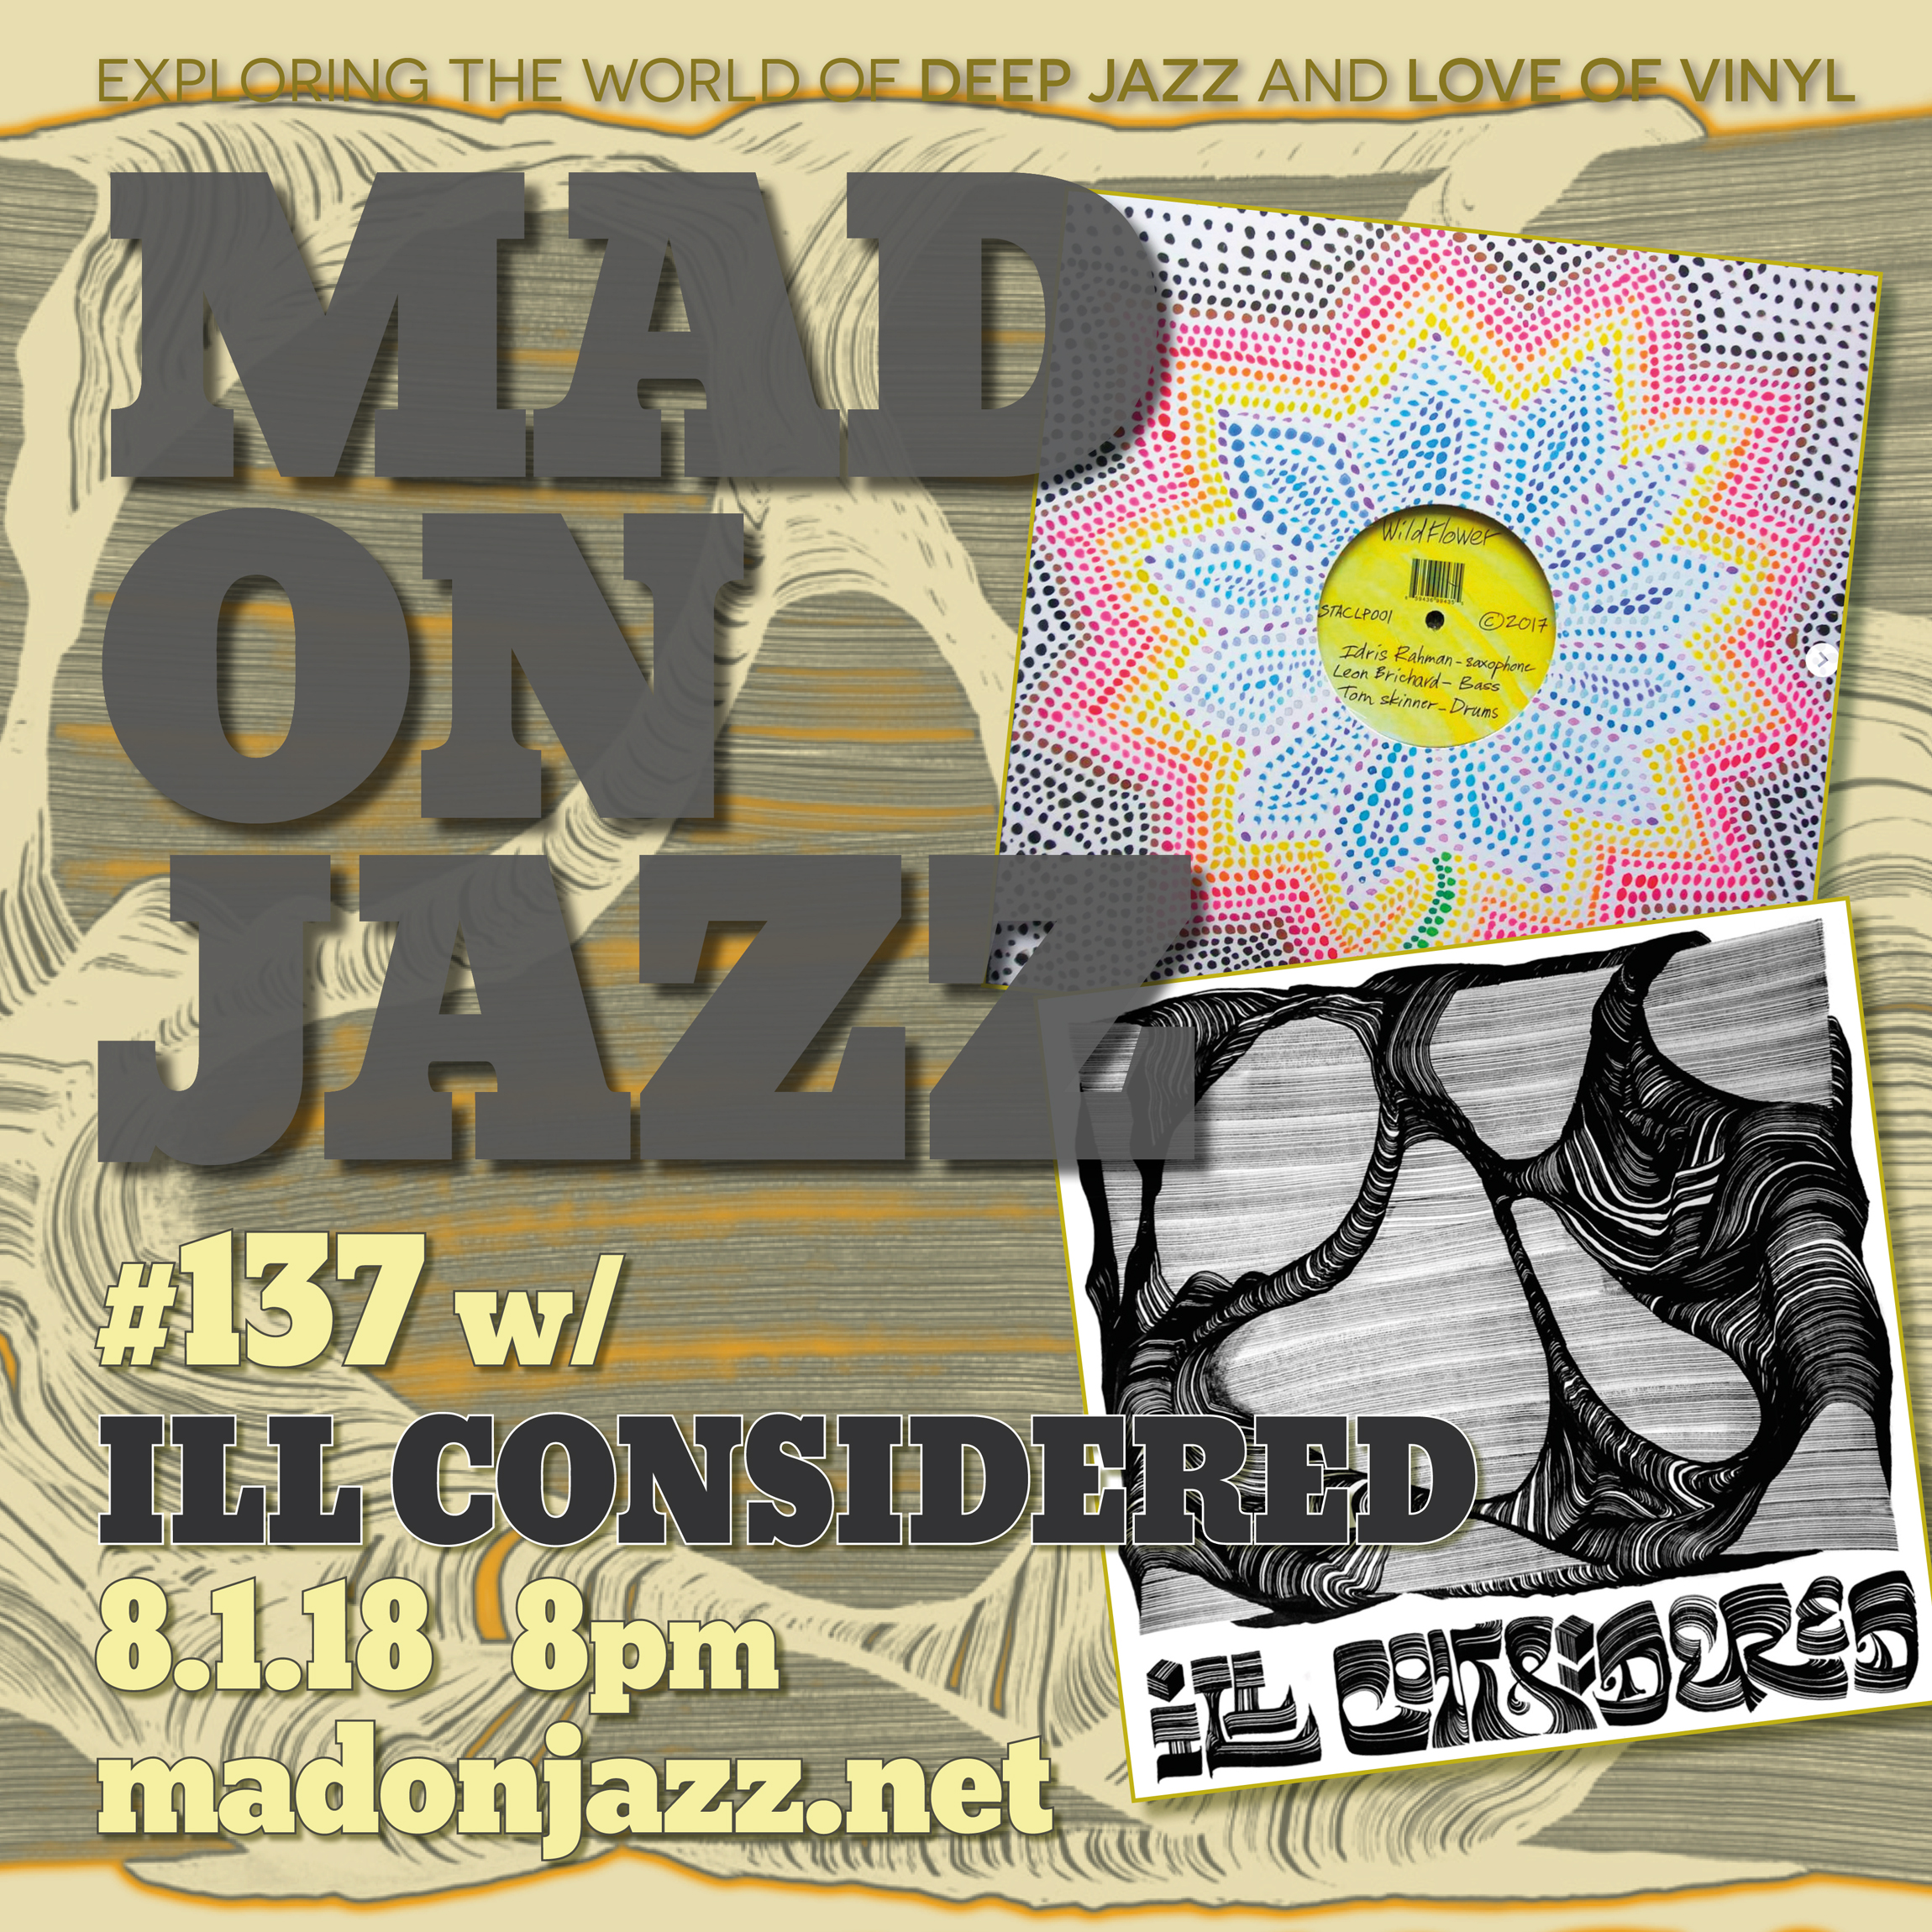 MADONJAZZ #137 w/ Ill Considered London